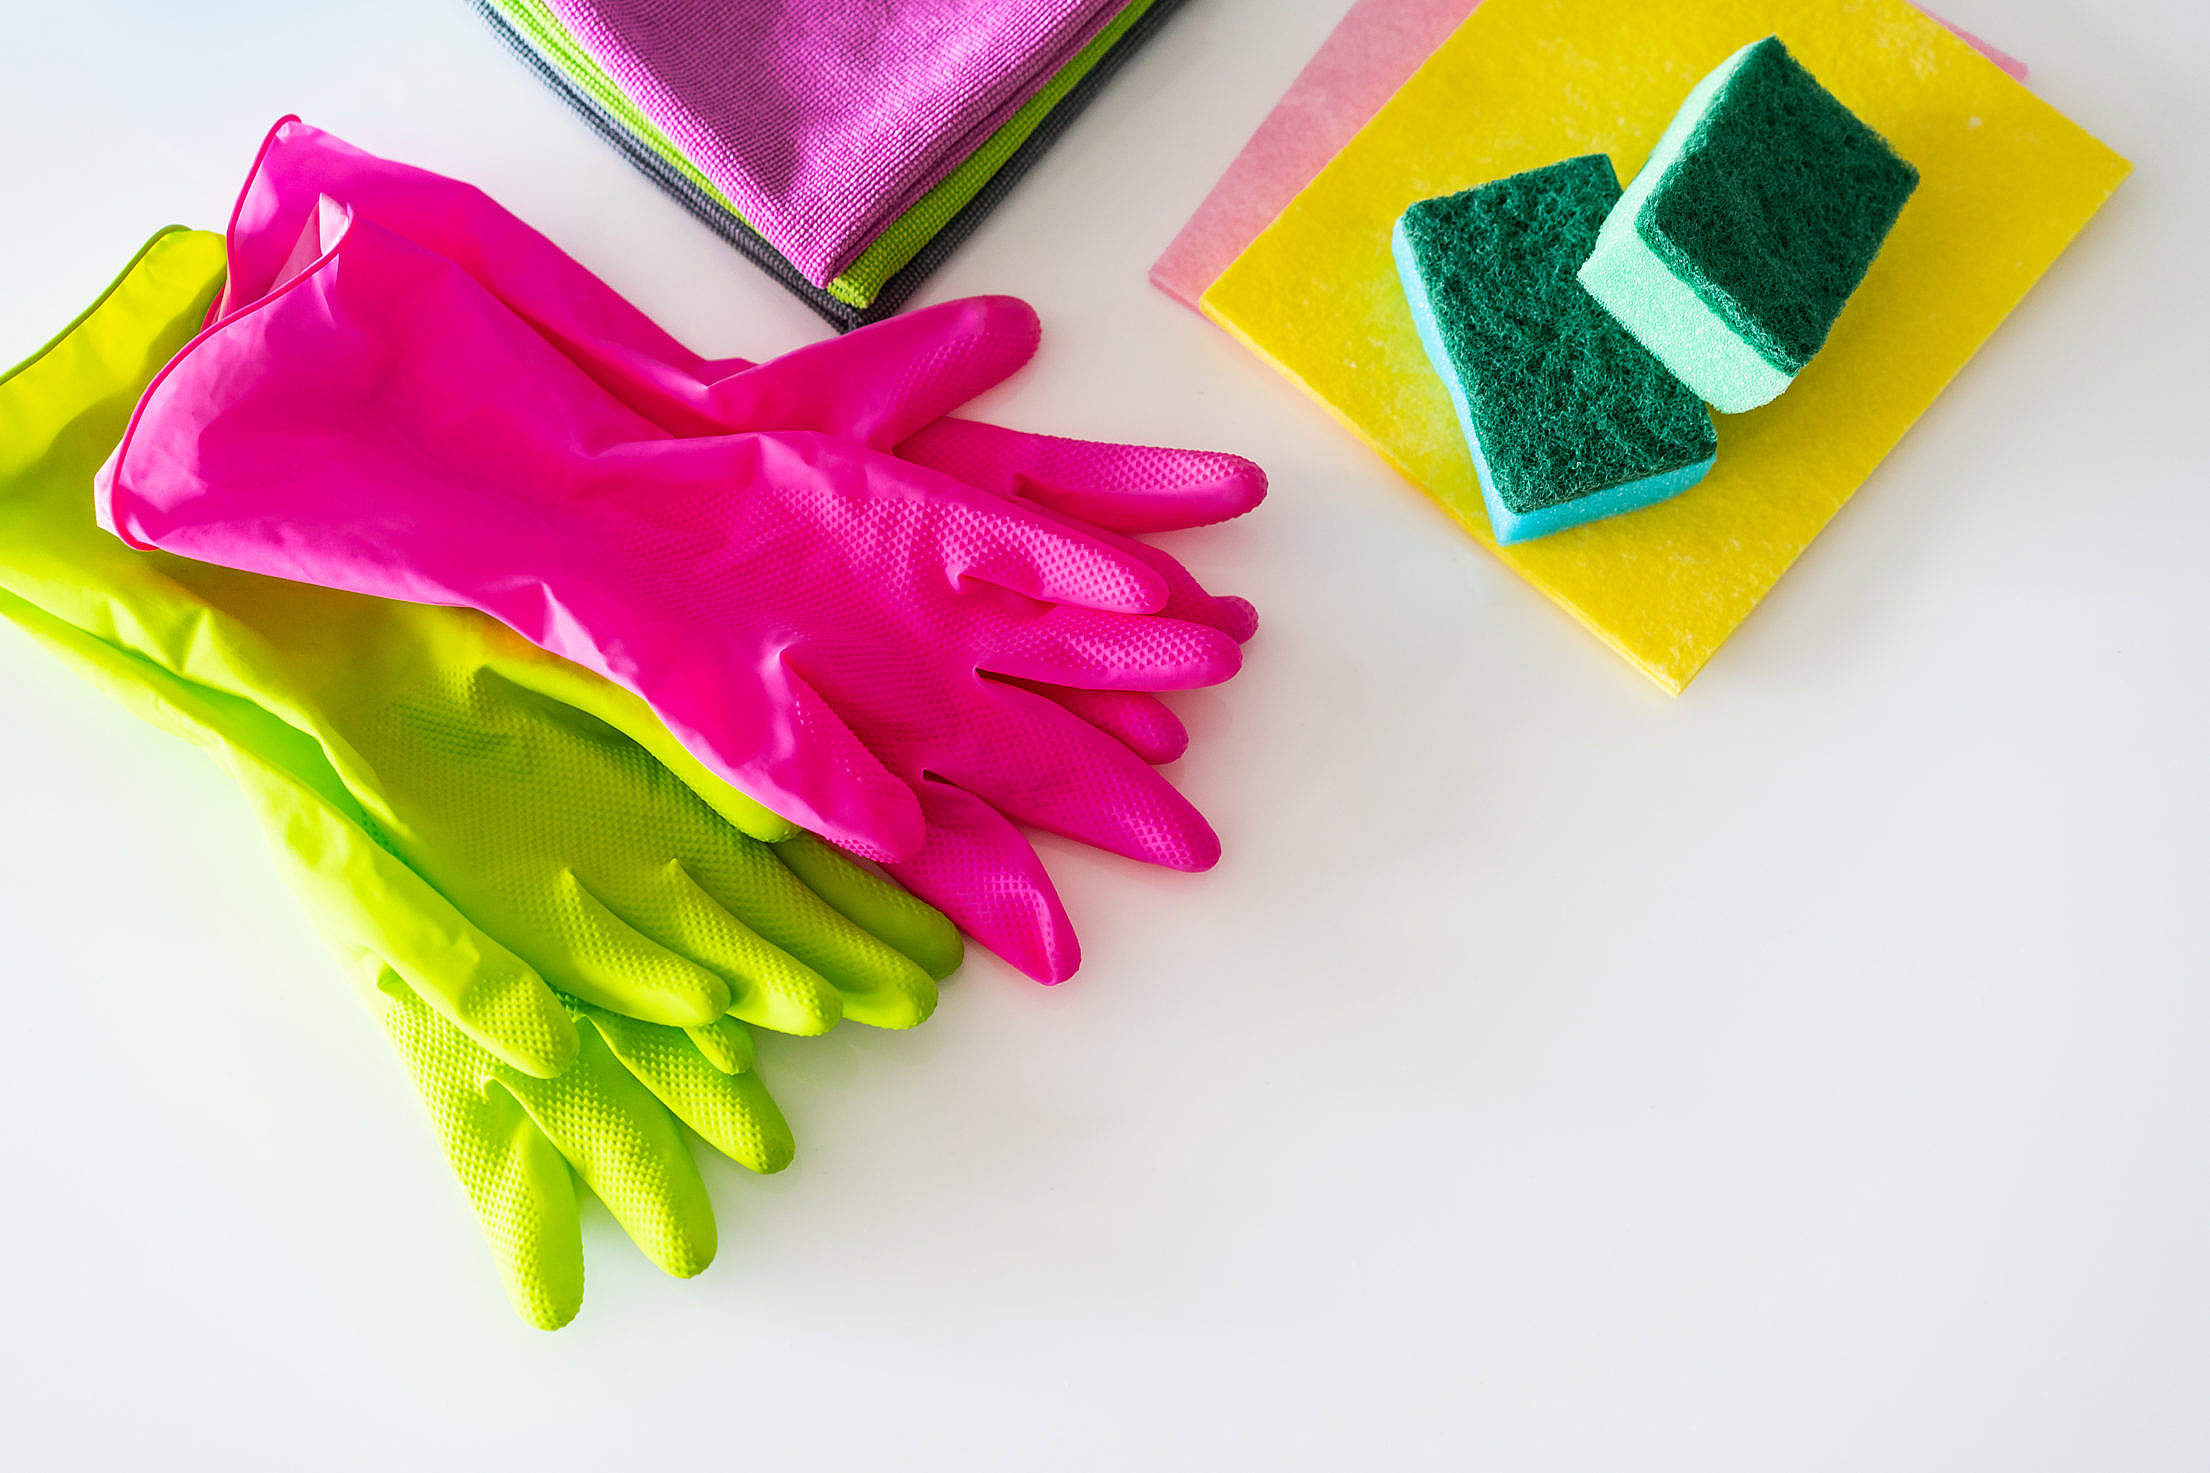 Cleaning Services Free Stock Photo